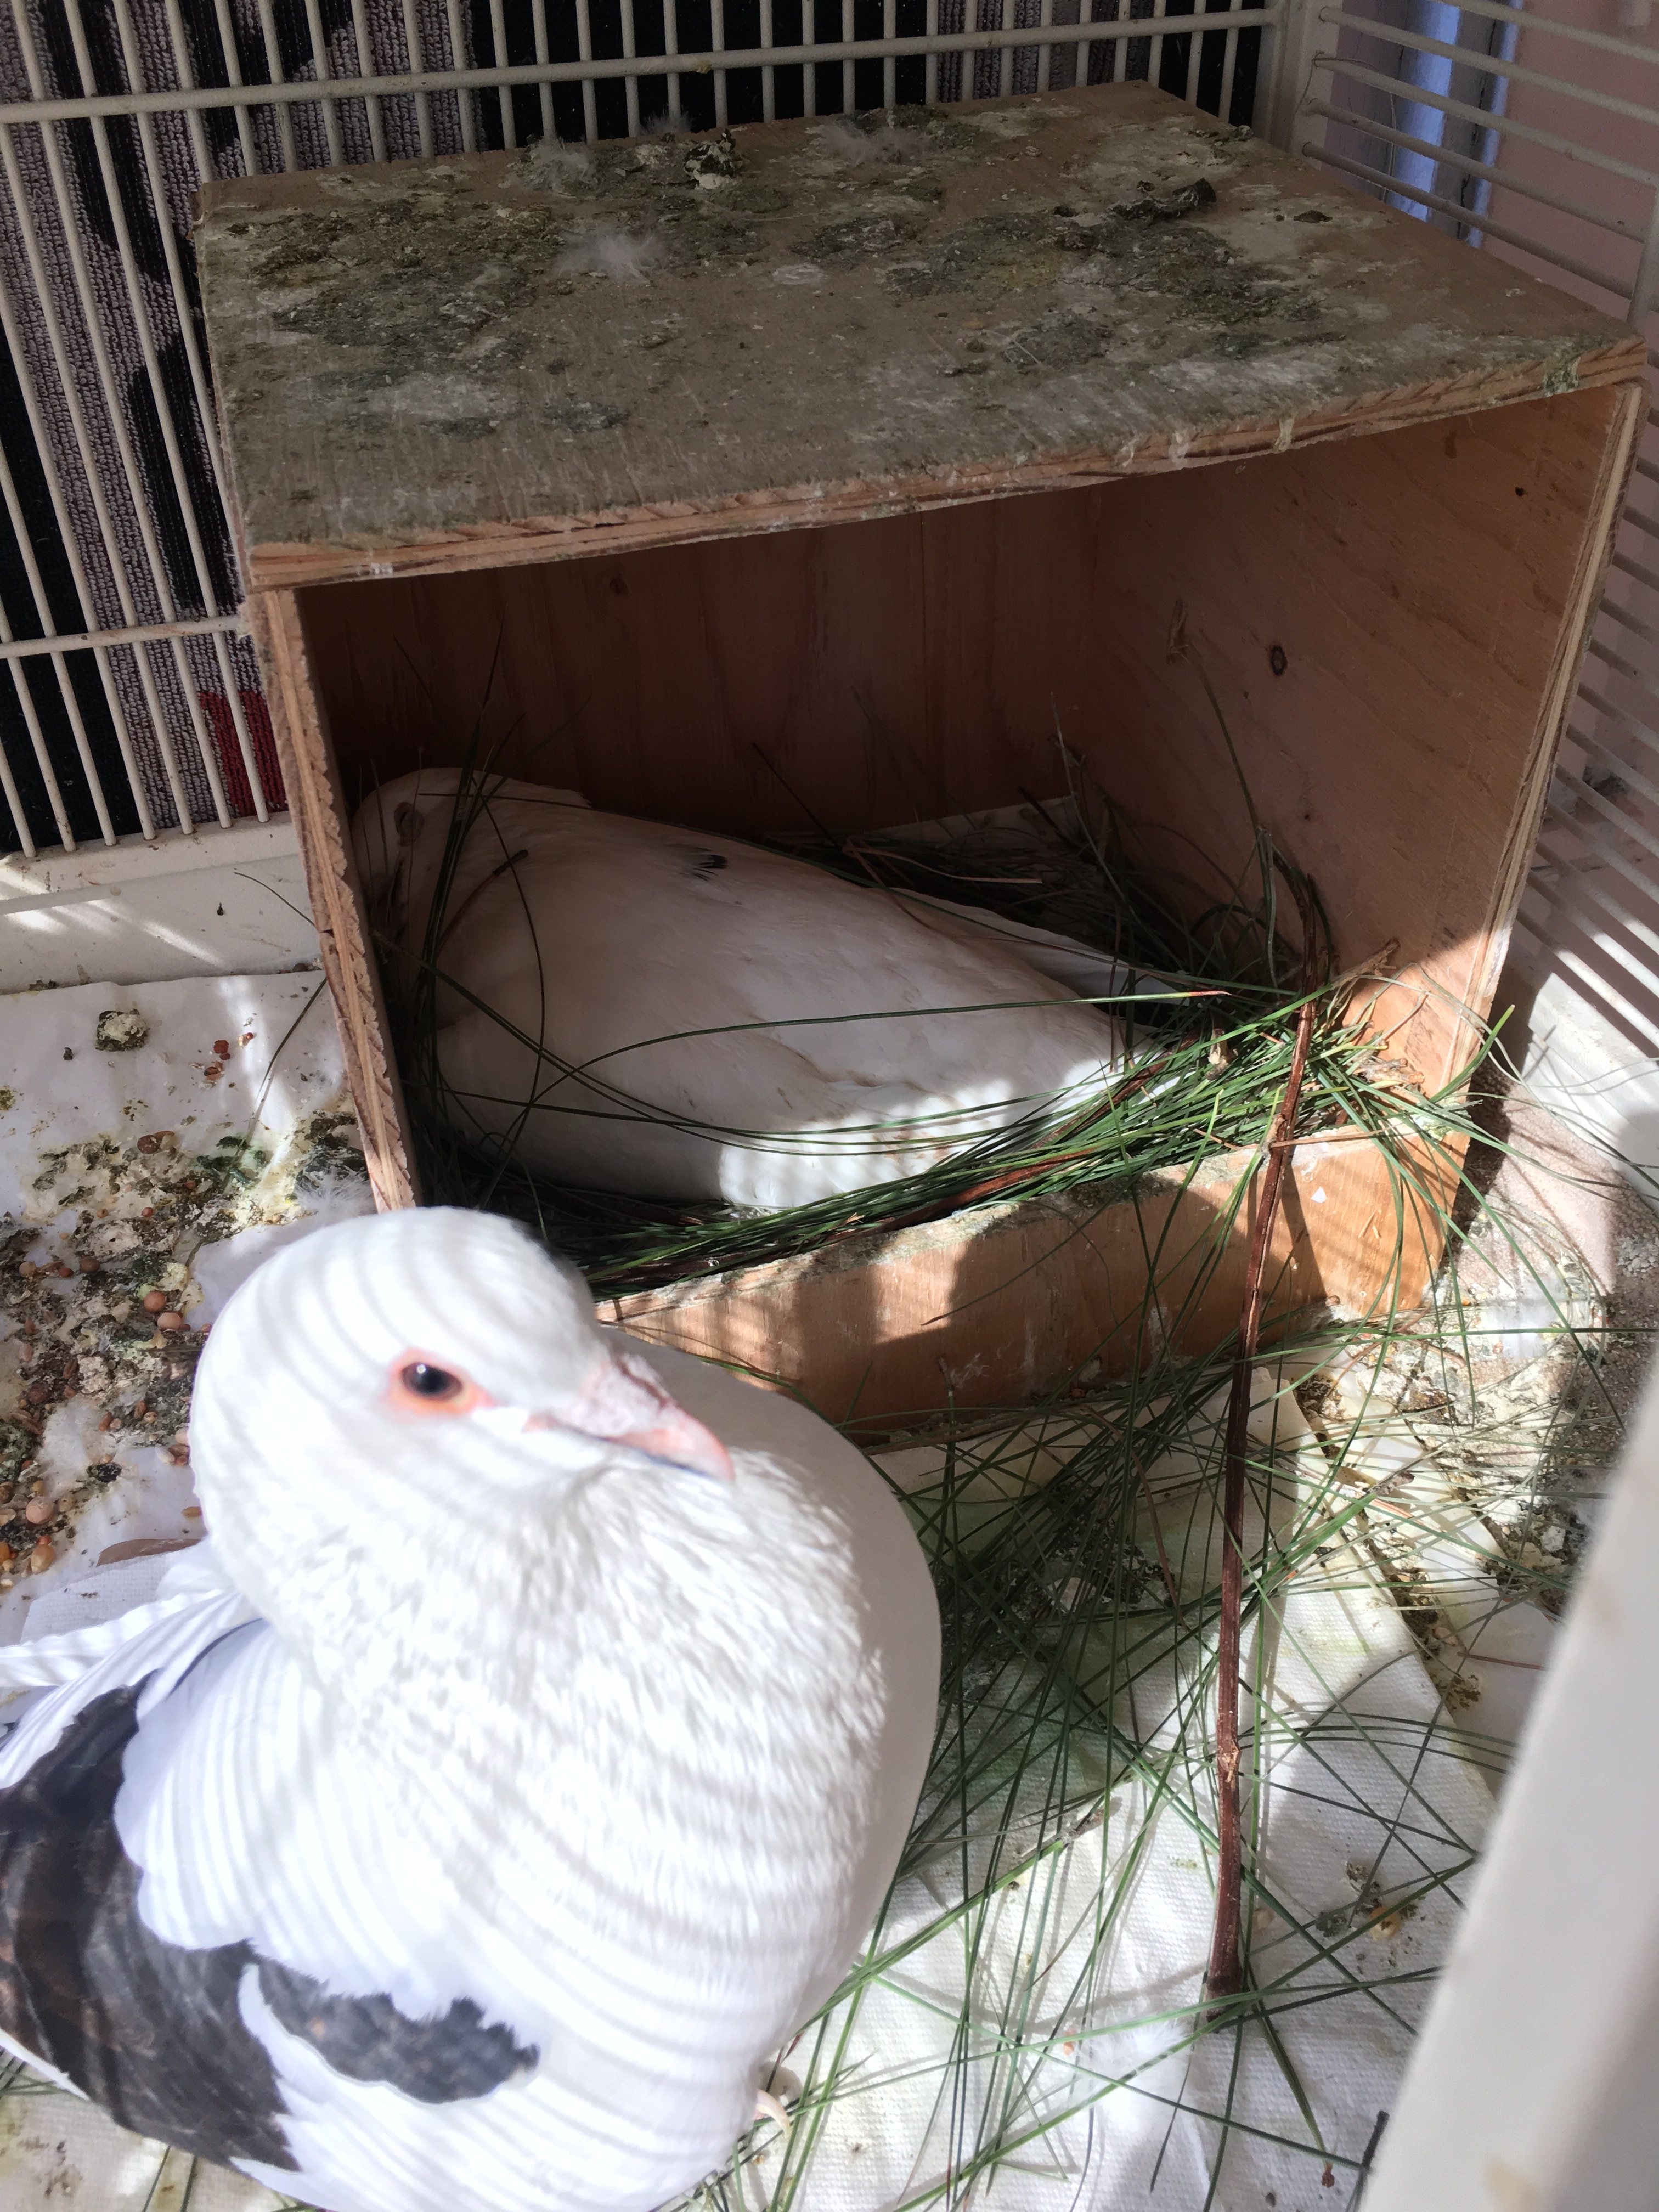 Dallas kept busy bringing pine needles to the nest all day